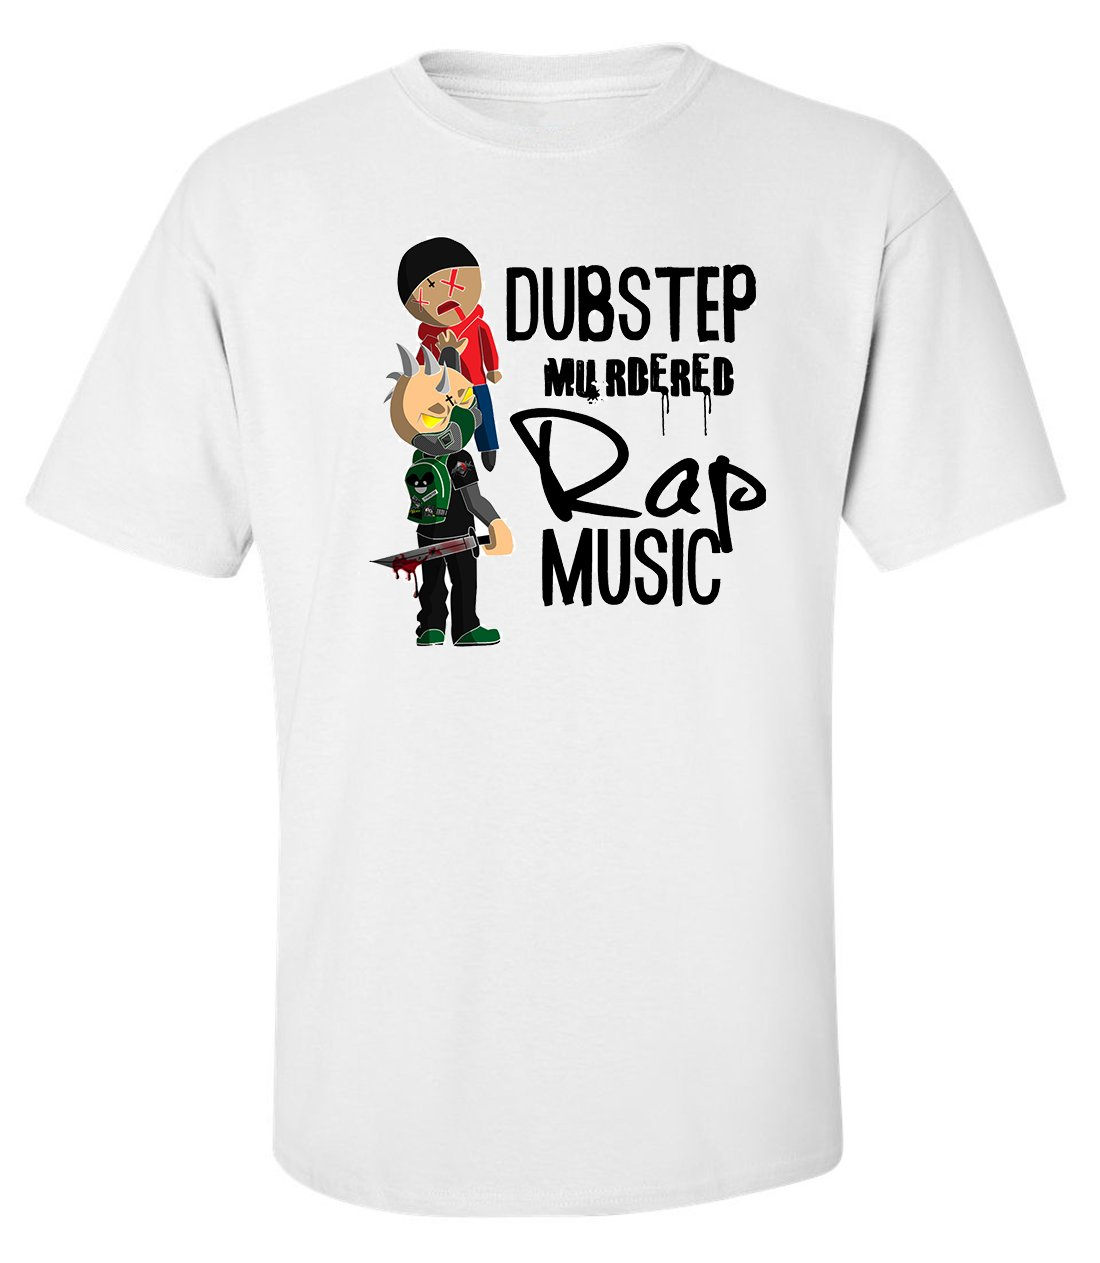 Dubstep murdered rap music men printed white cotton t-shirt size L